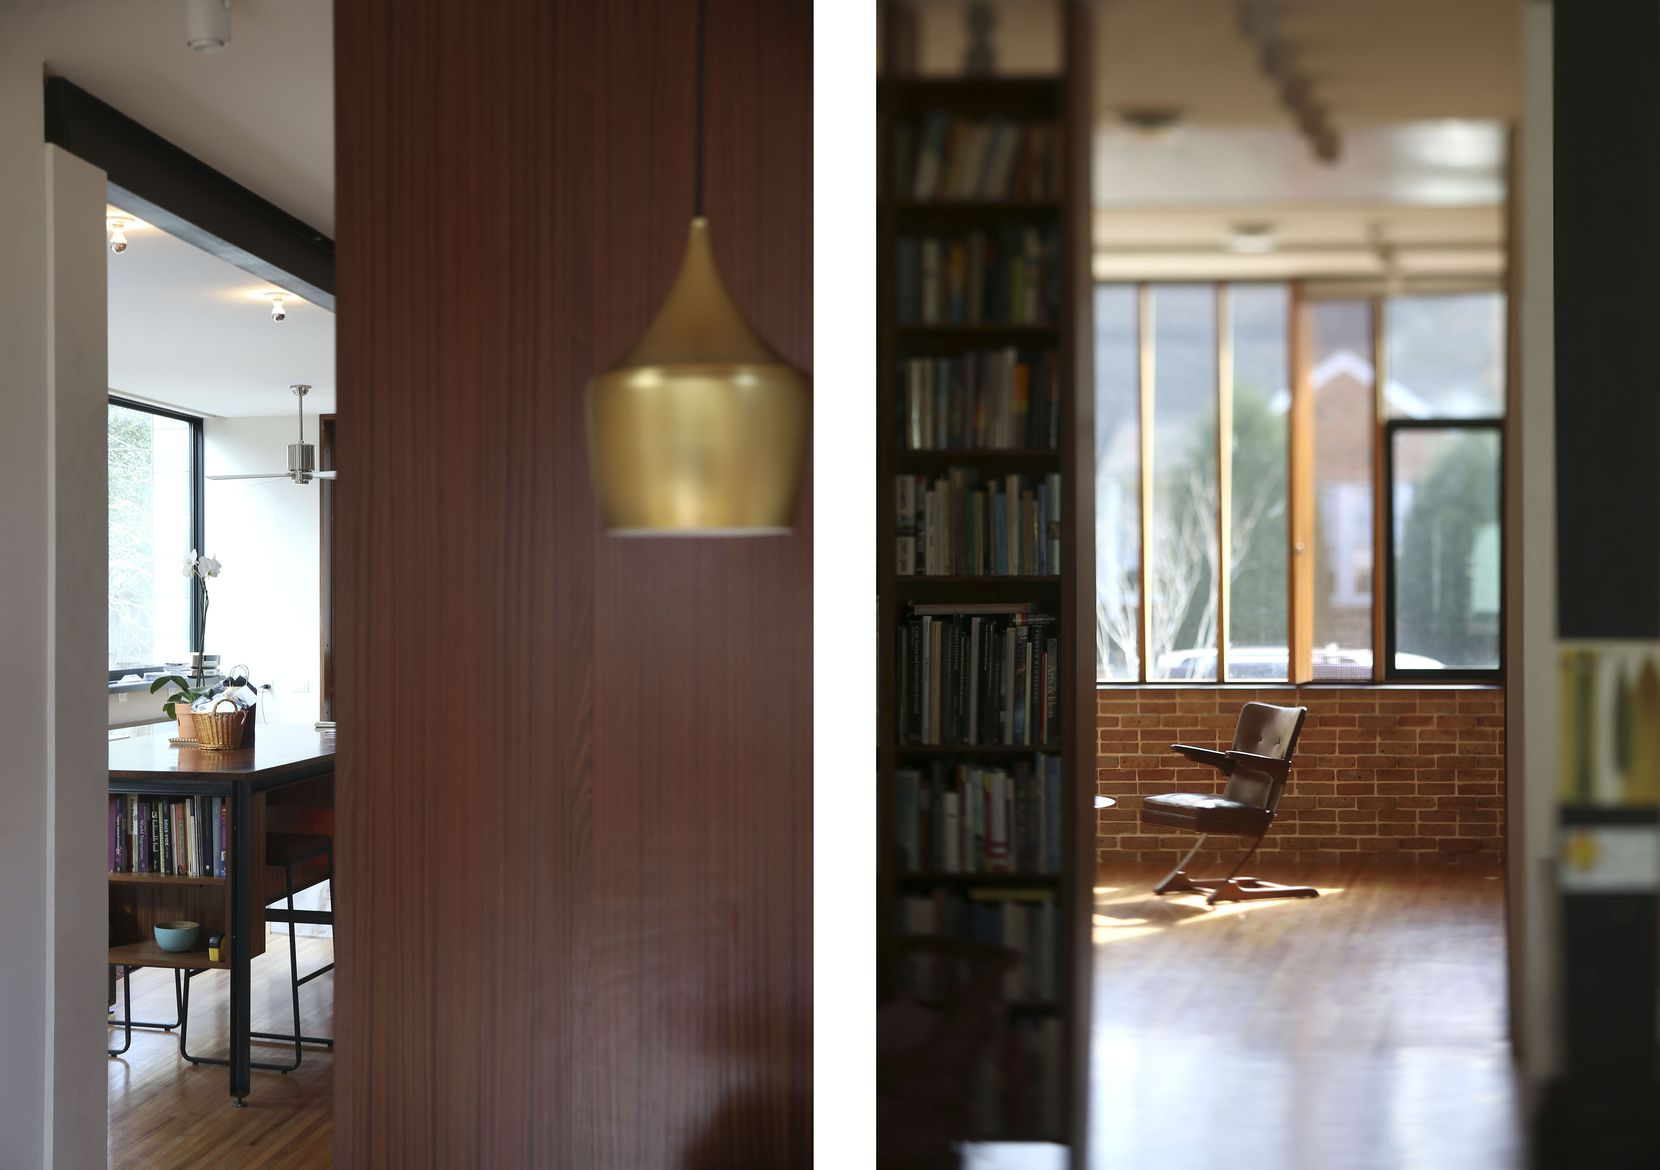 LEFT: A suspended light hangs over the dining table in an area backed by a smooth, wood-paneled surface that separates the public, front rooms from the private rooms on the first floor. 